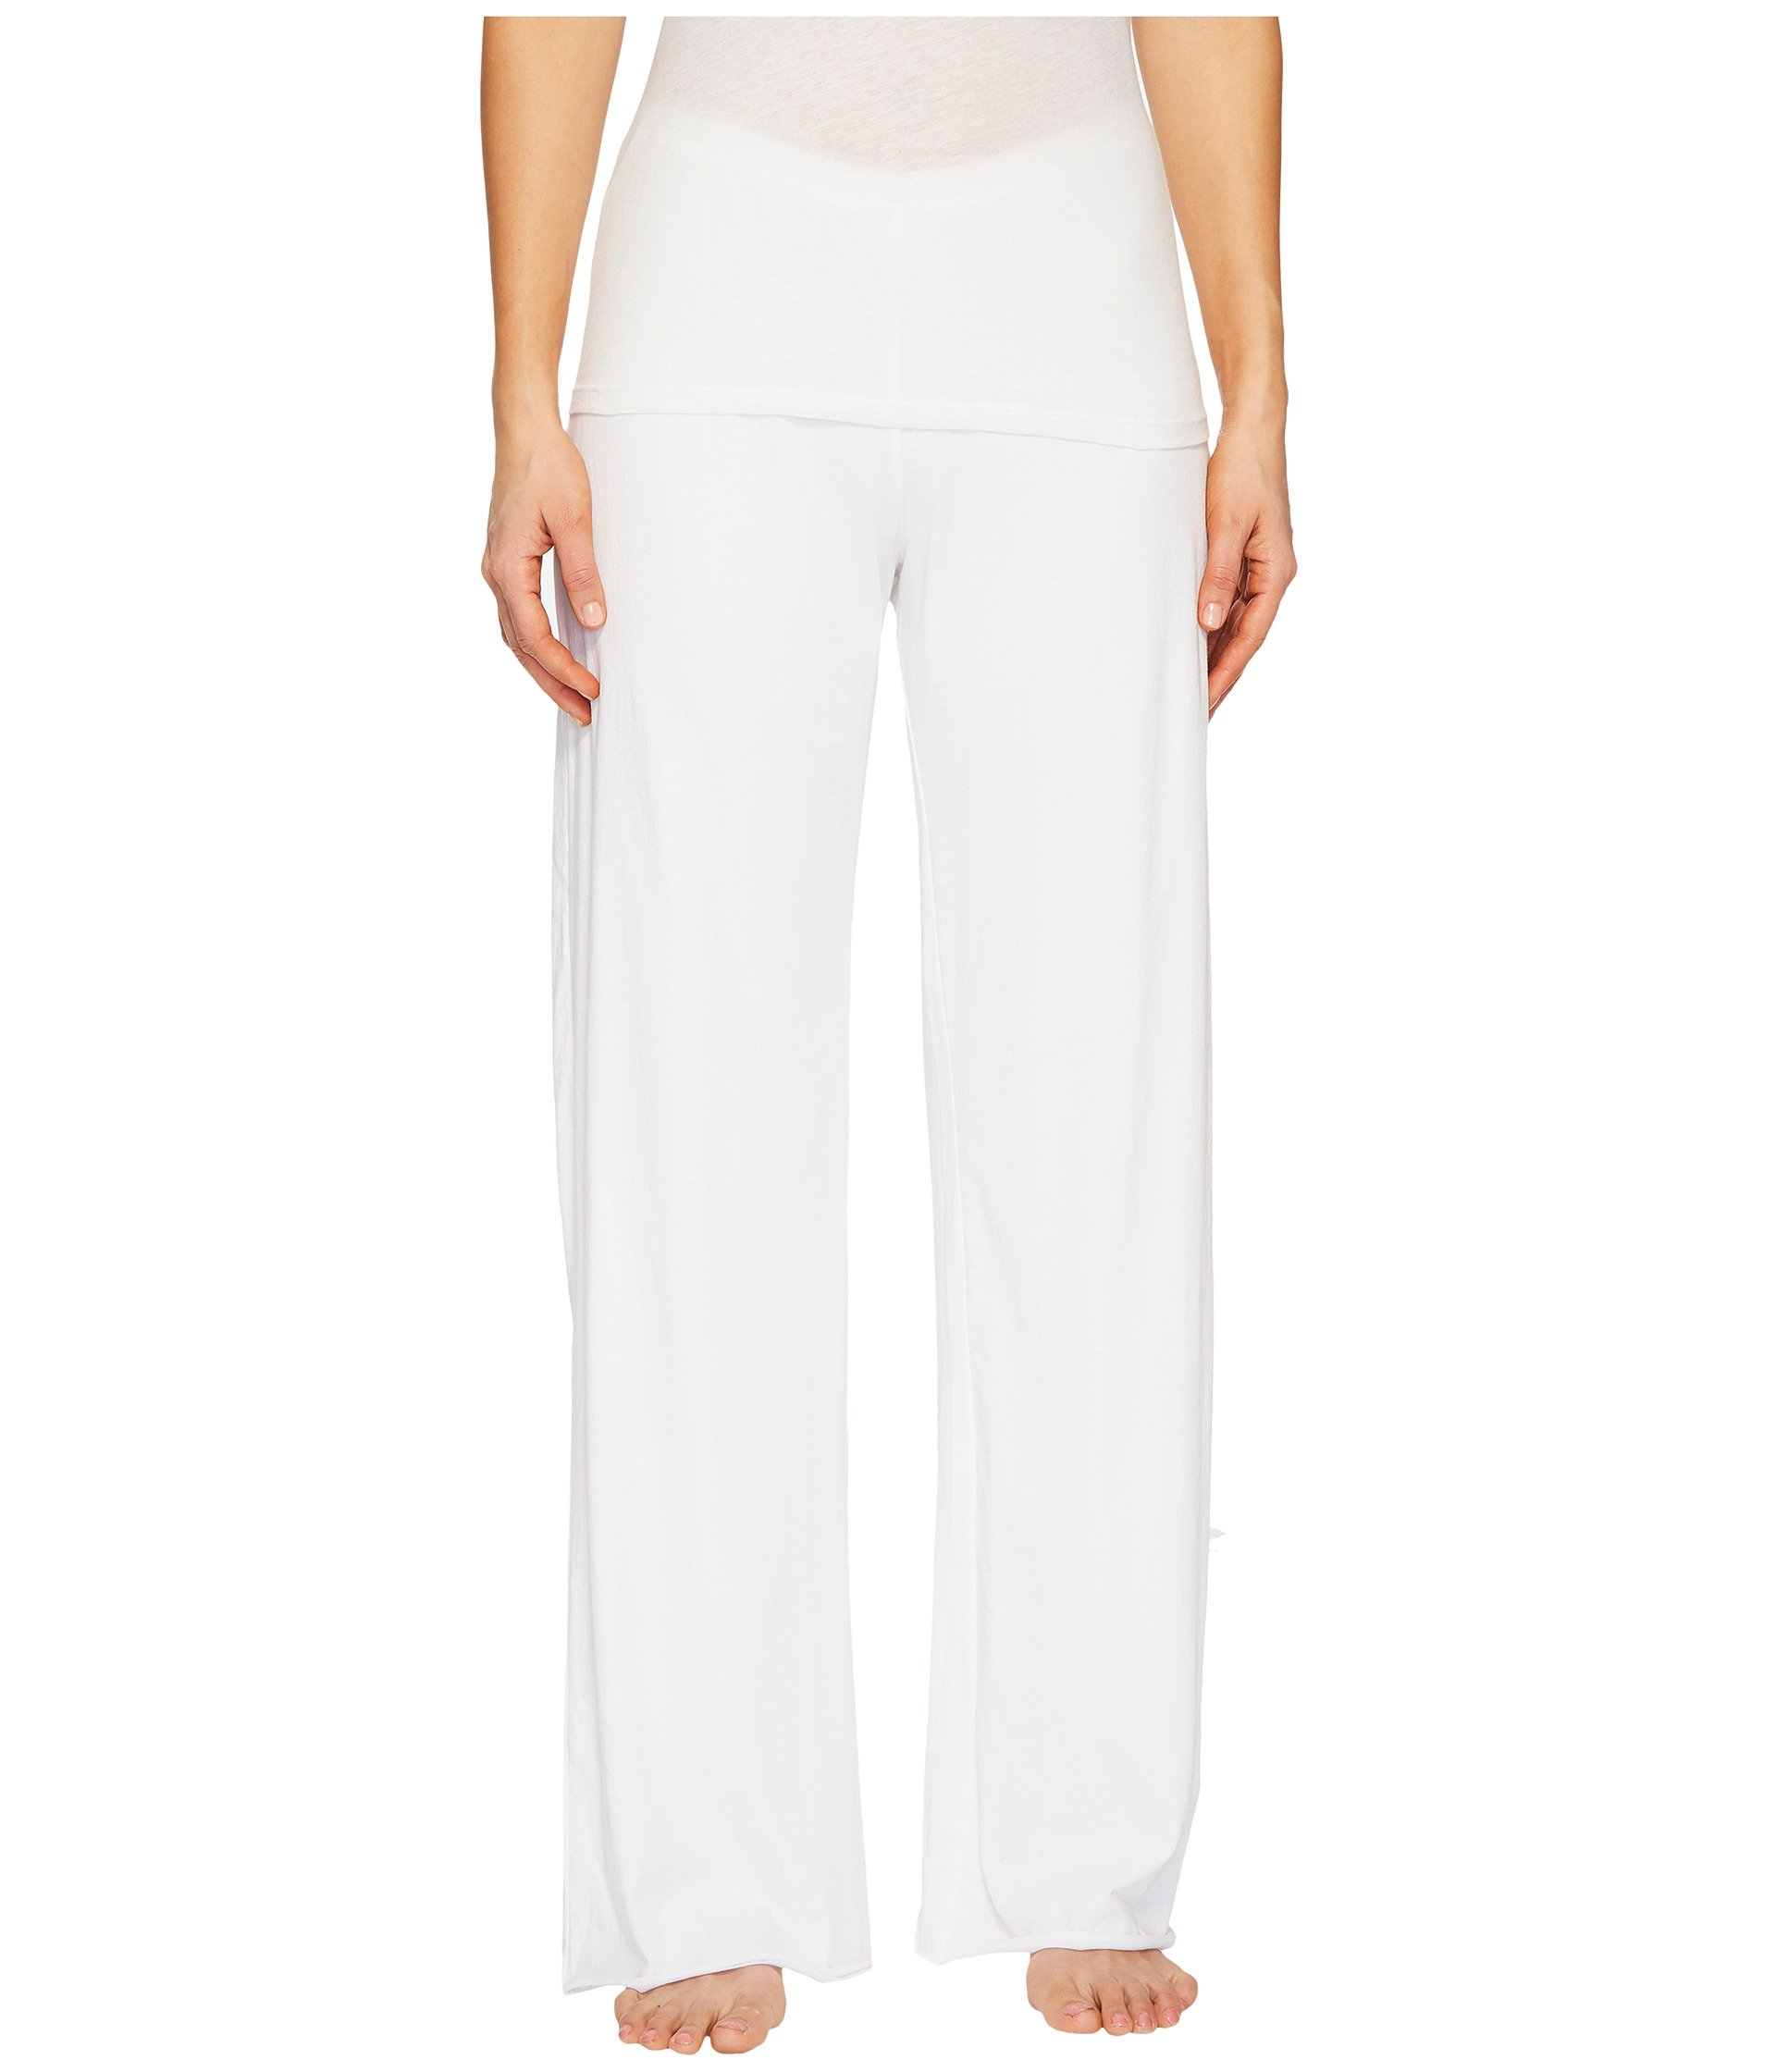 Layer Double Pants White Skin White Pants Layer Double Skin Skin qFfnSH